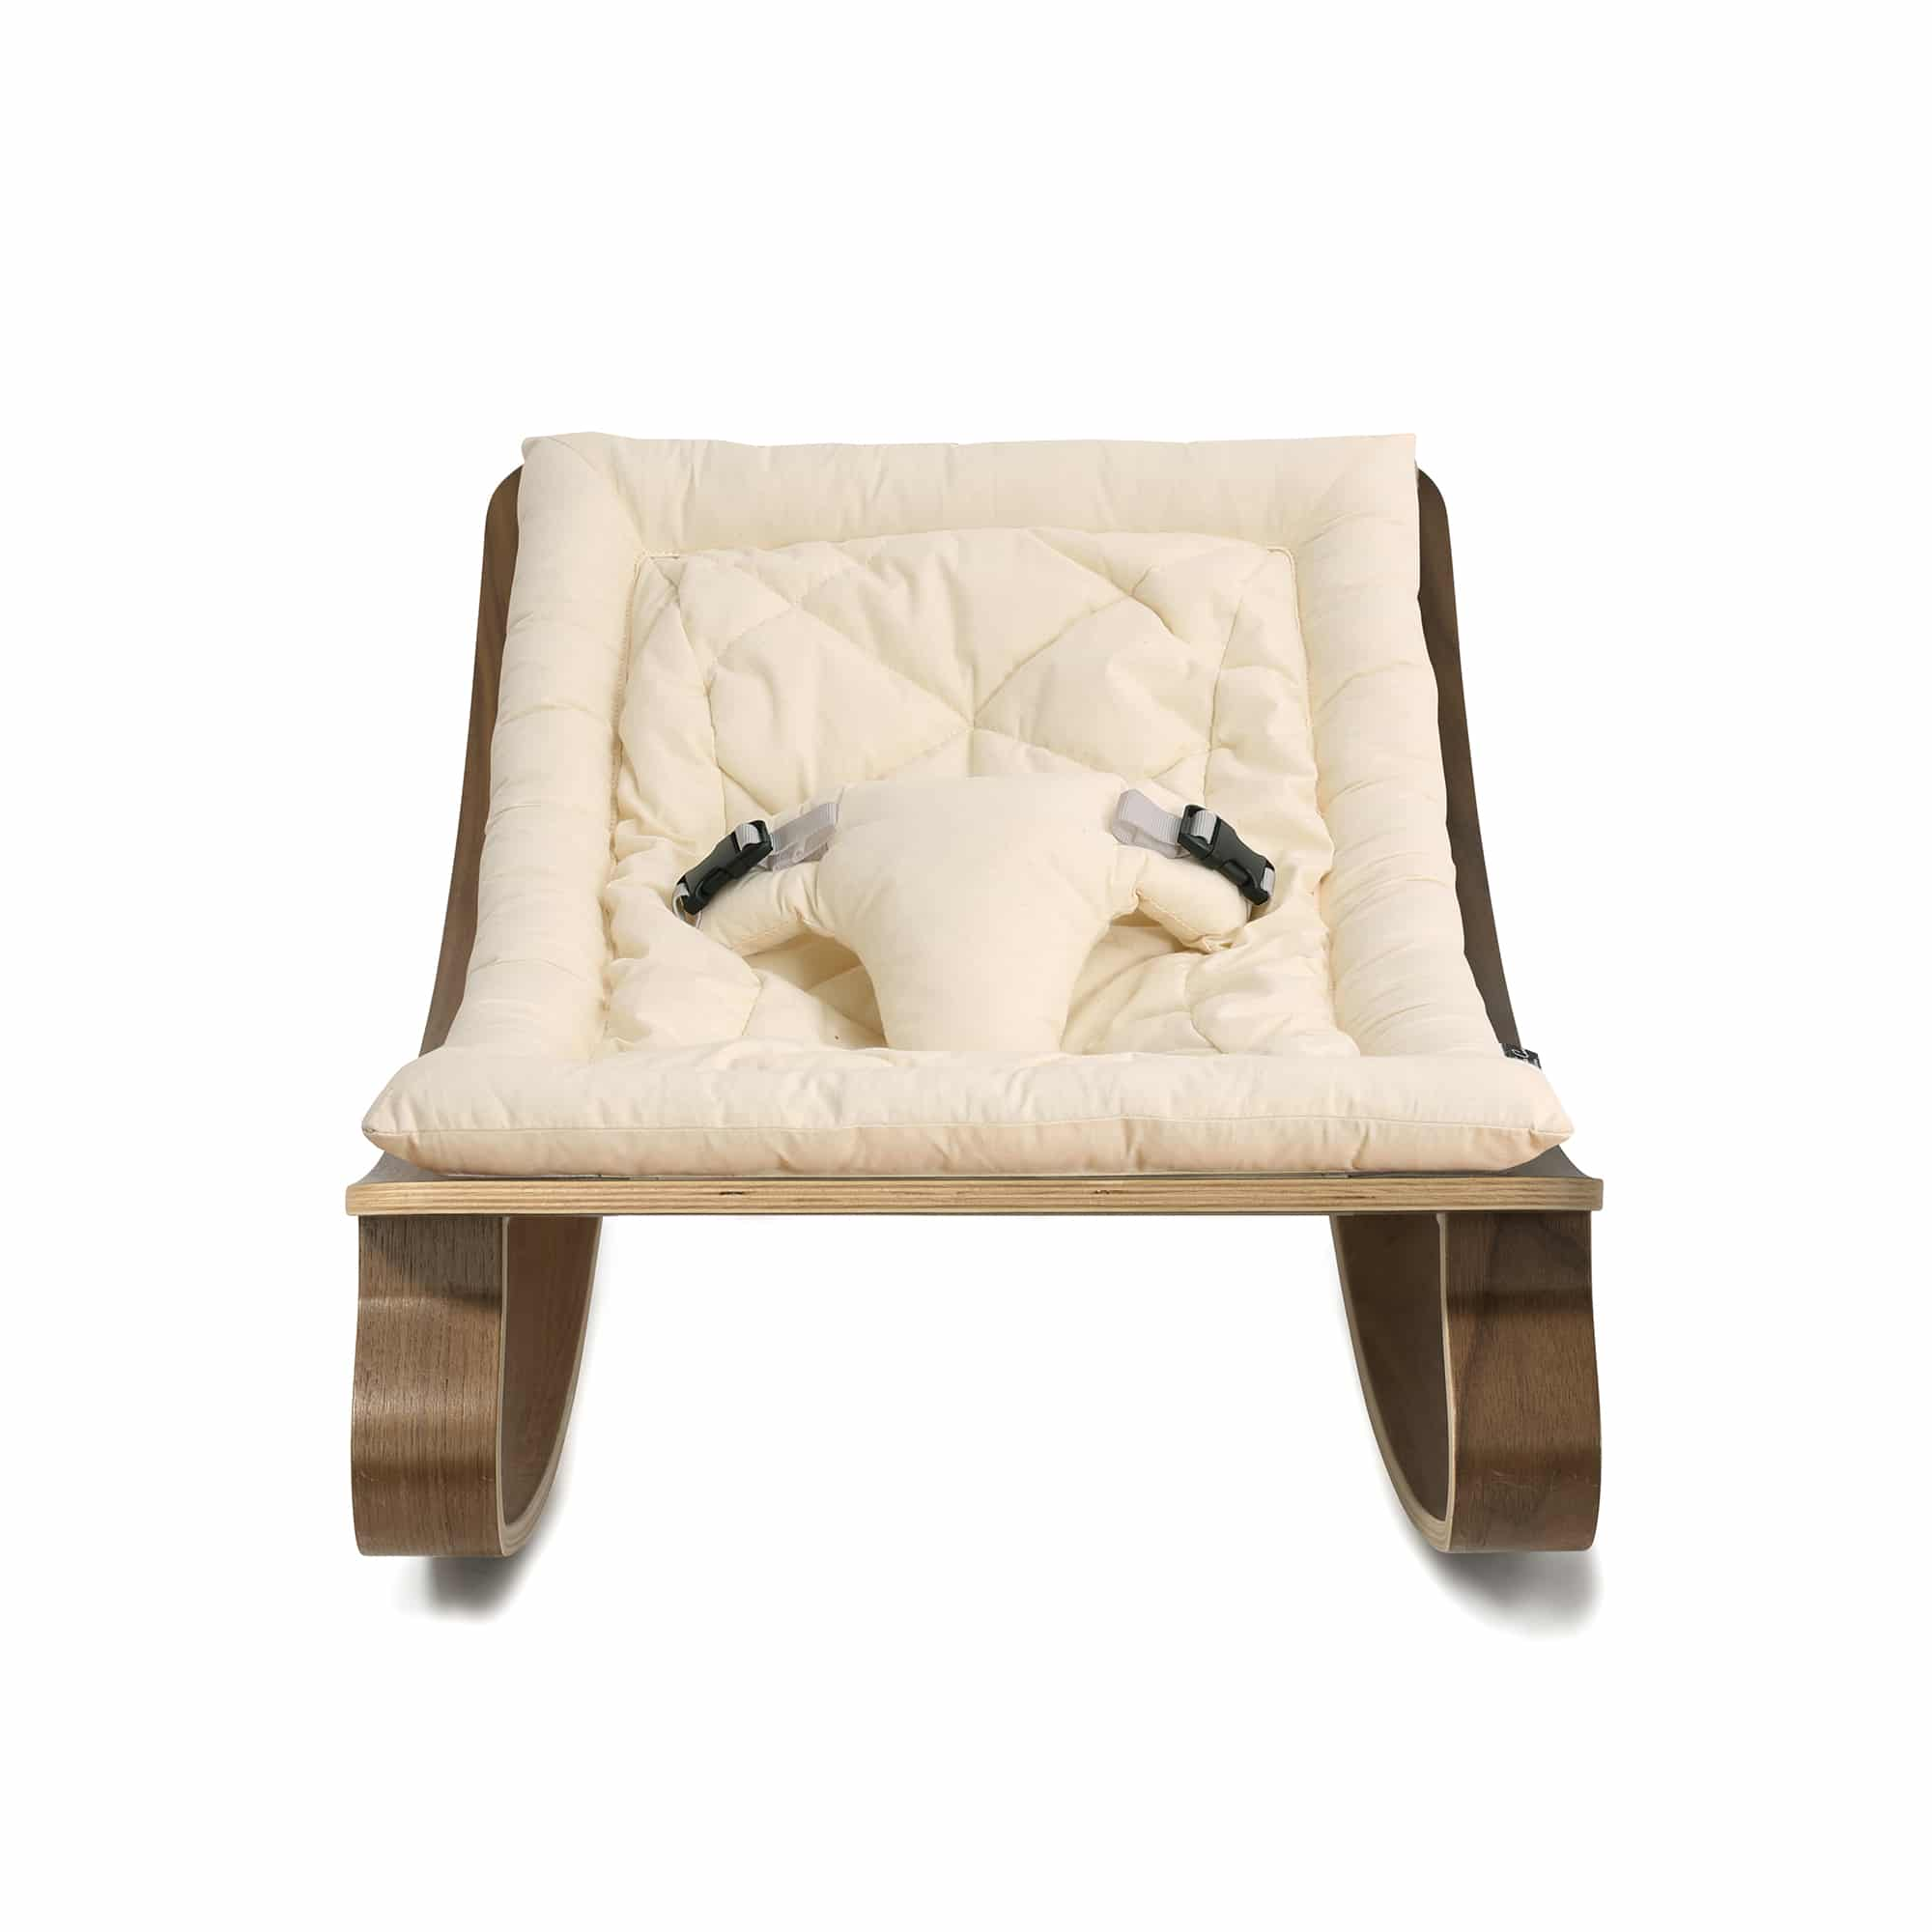 New Baby Rocker Levo In Walnut With Organic White Cushion